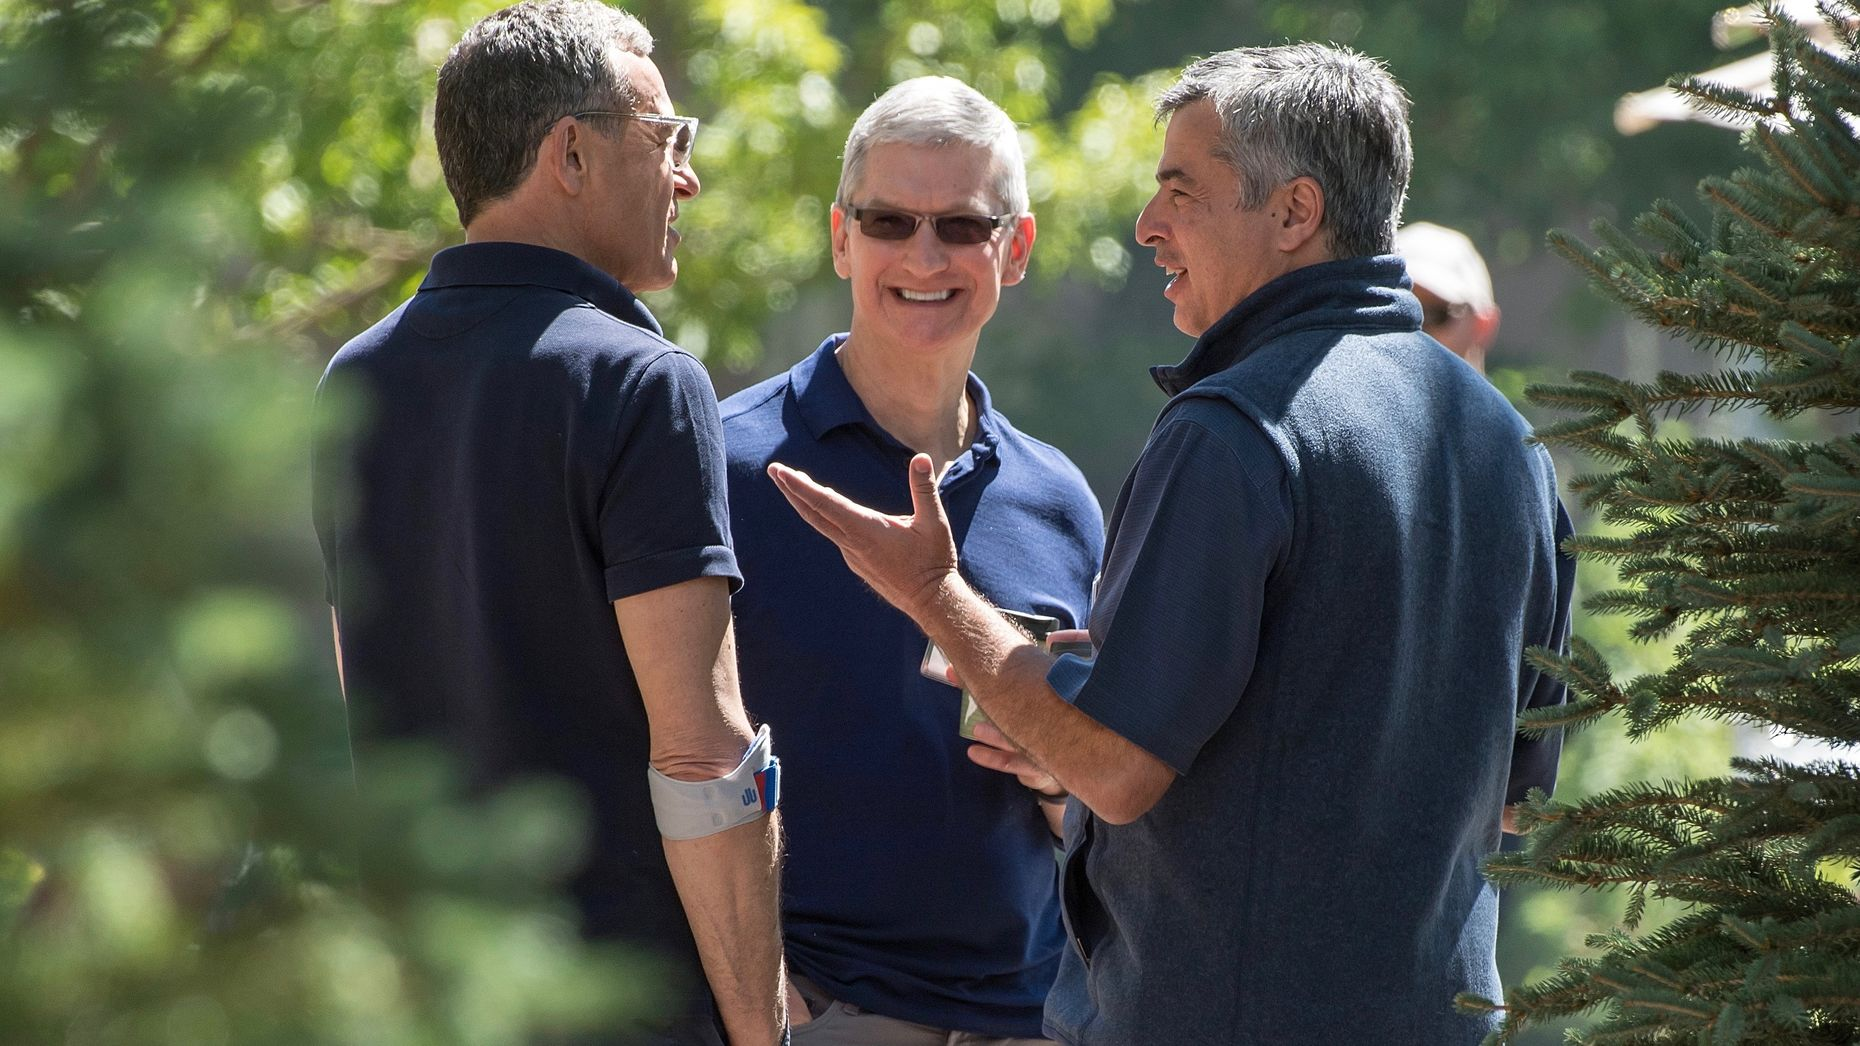 Disney CEO Robert Iger with Apple CEO Tim Cook and Apple executive Eddy Cue at Sun Valley in 2016. Photo by Bloomberg.